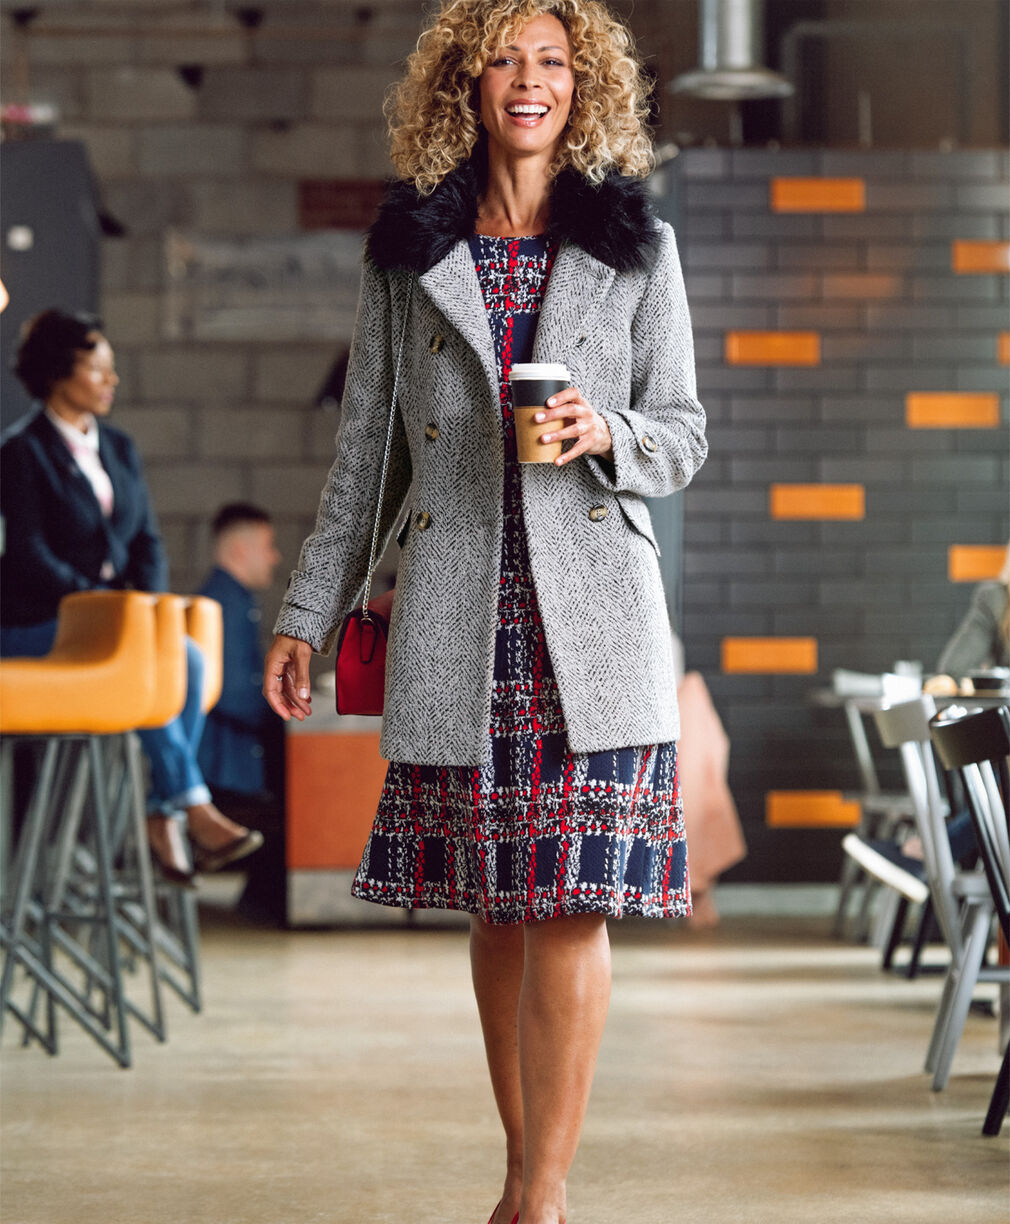 The Feelgood Coat | Double Breasted Feelgood Coat | Textured Check Dress | By Cotton Traders